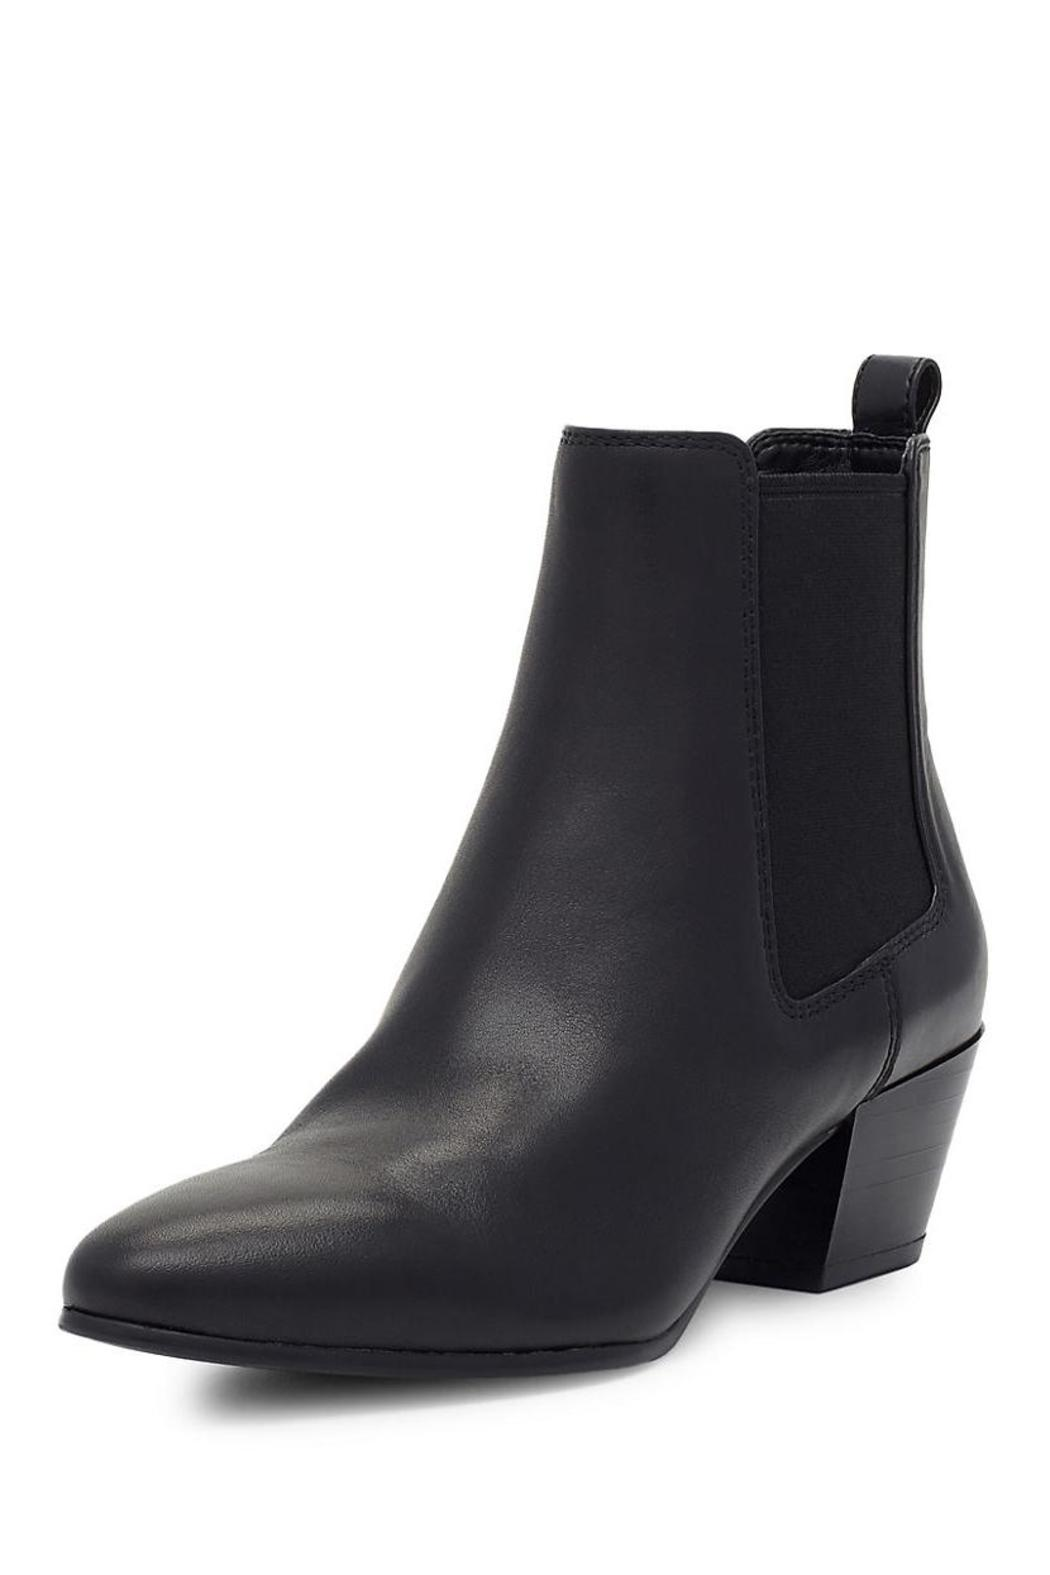 45078cda3628 Sam Edelman Reesa Leather Bootie from Hudson Valley by Bfree ...